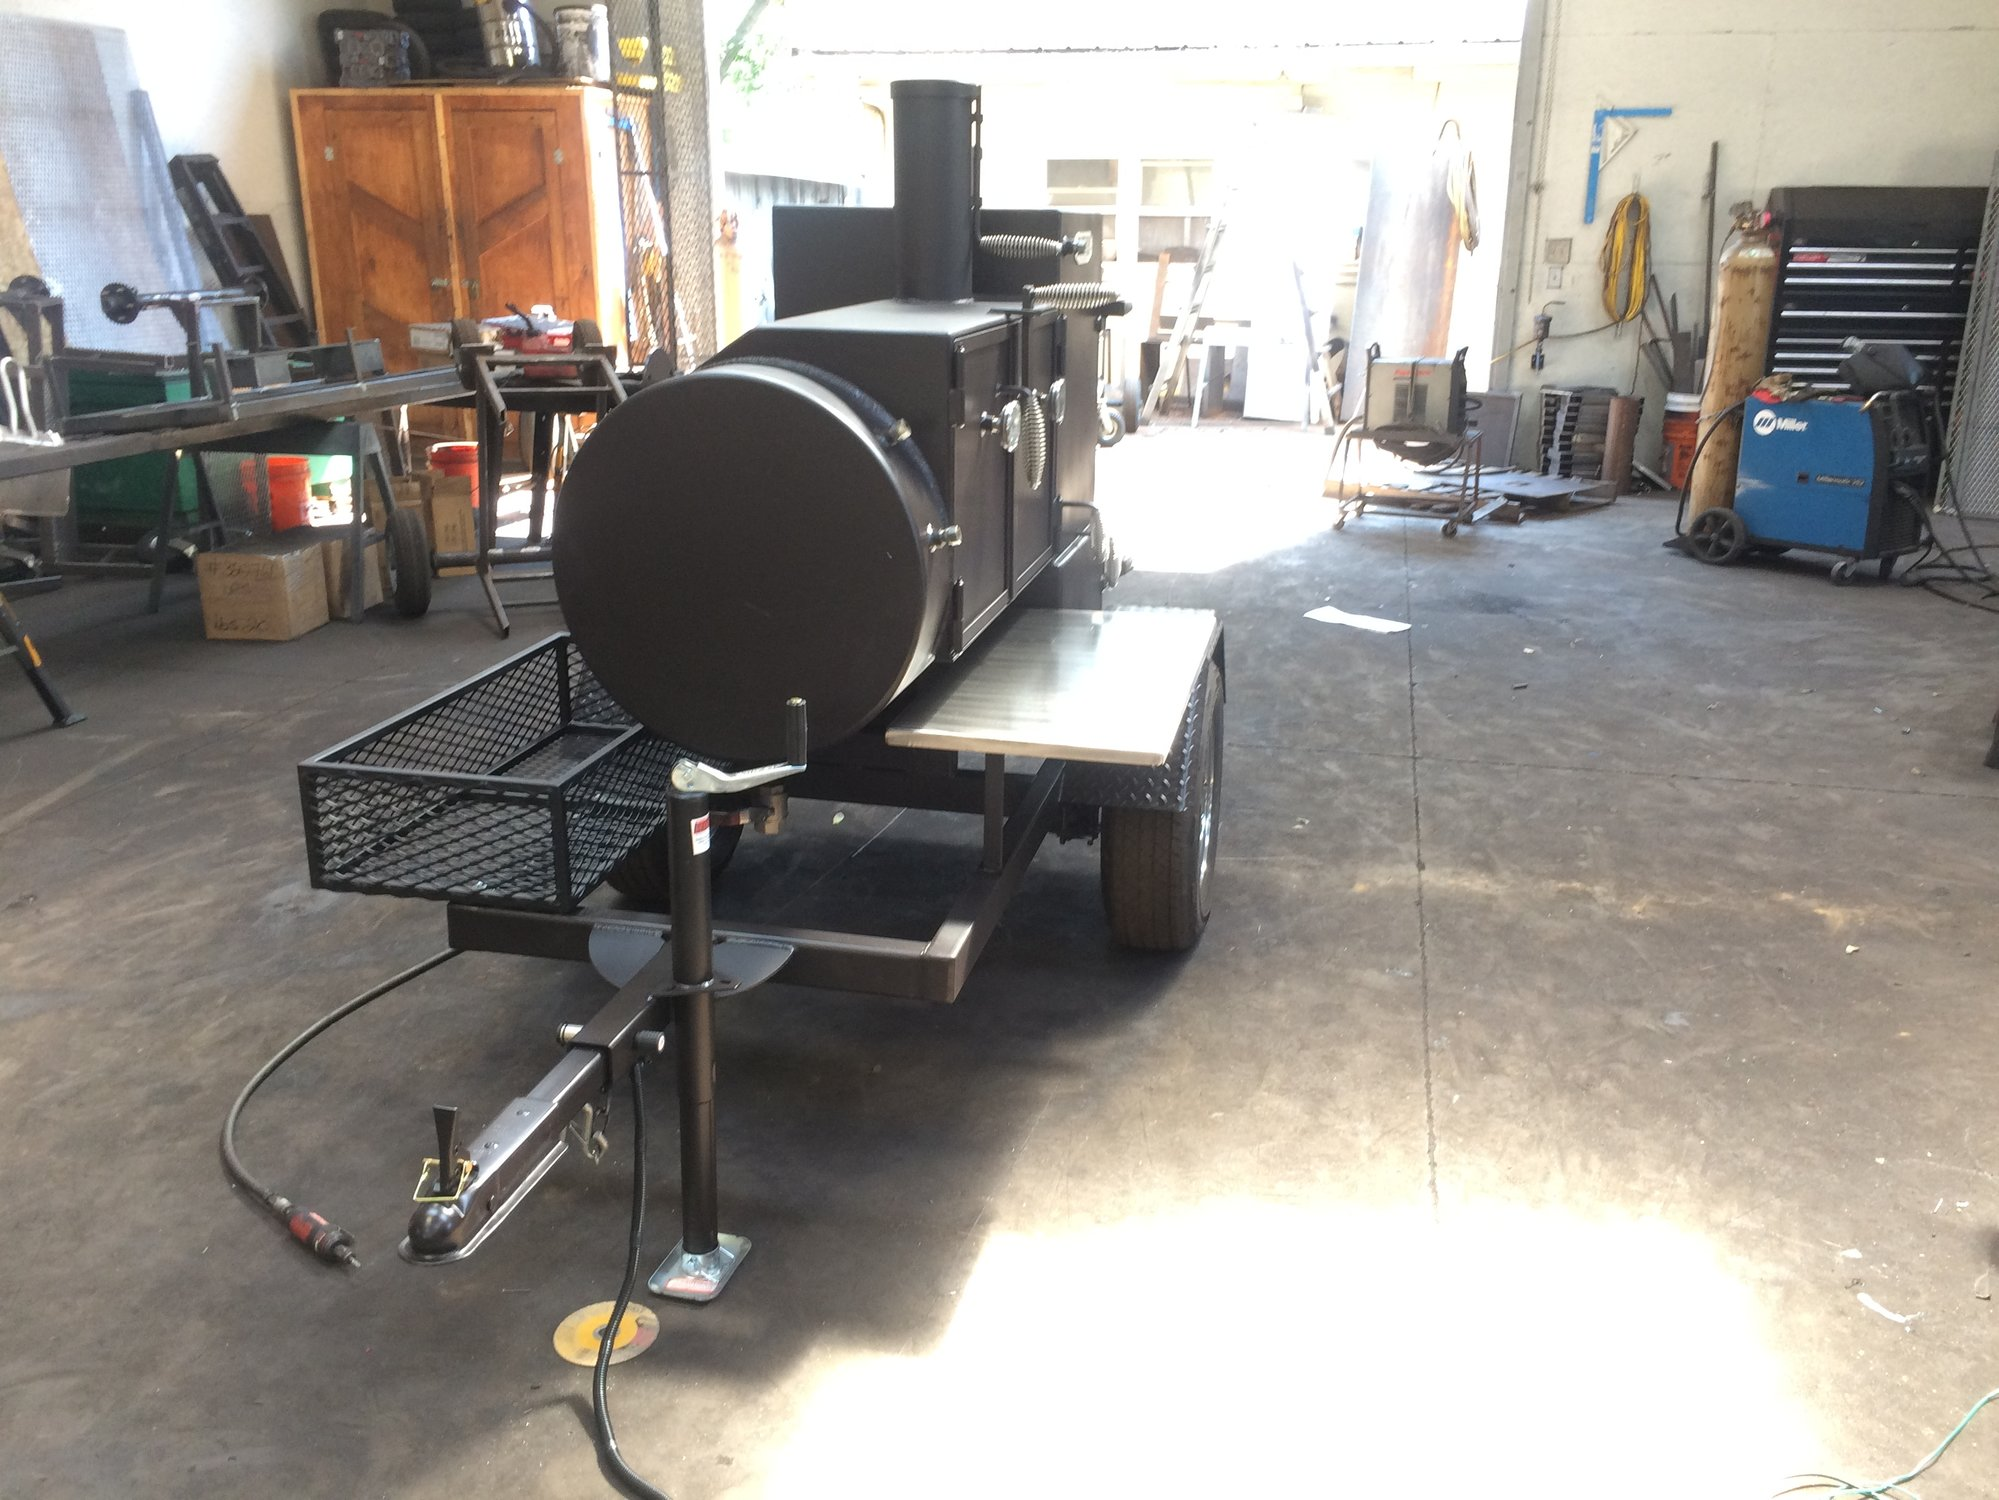 Shirley 24x42 Added To The Family Big Green Egg